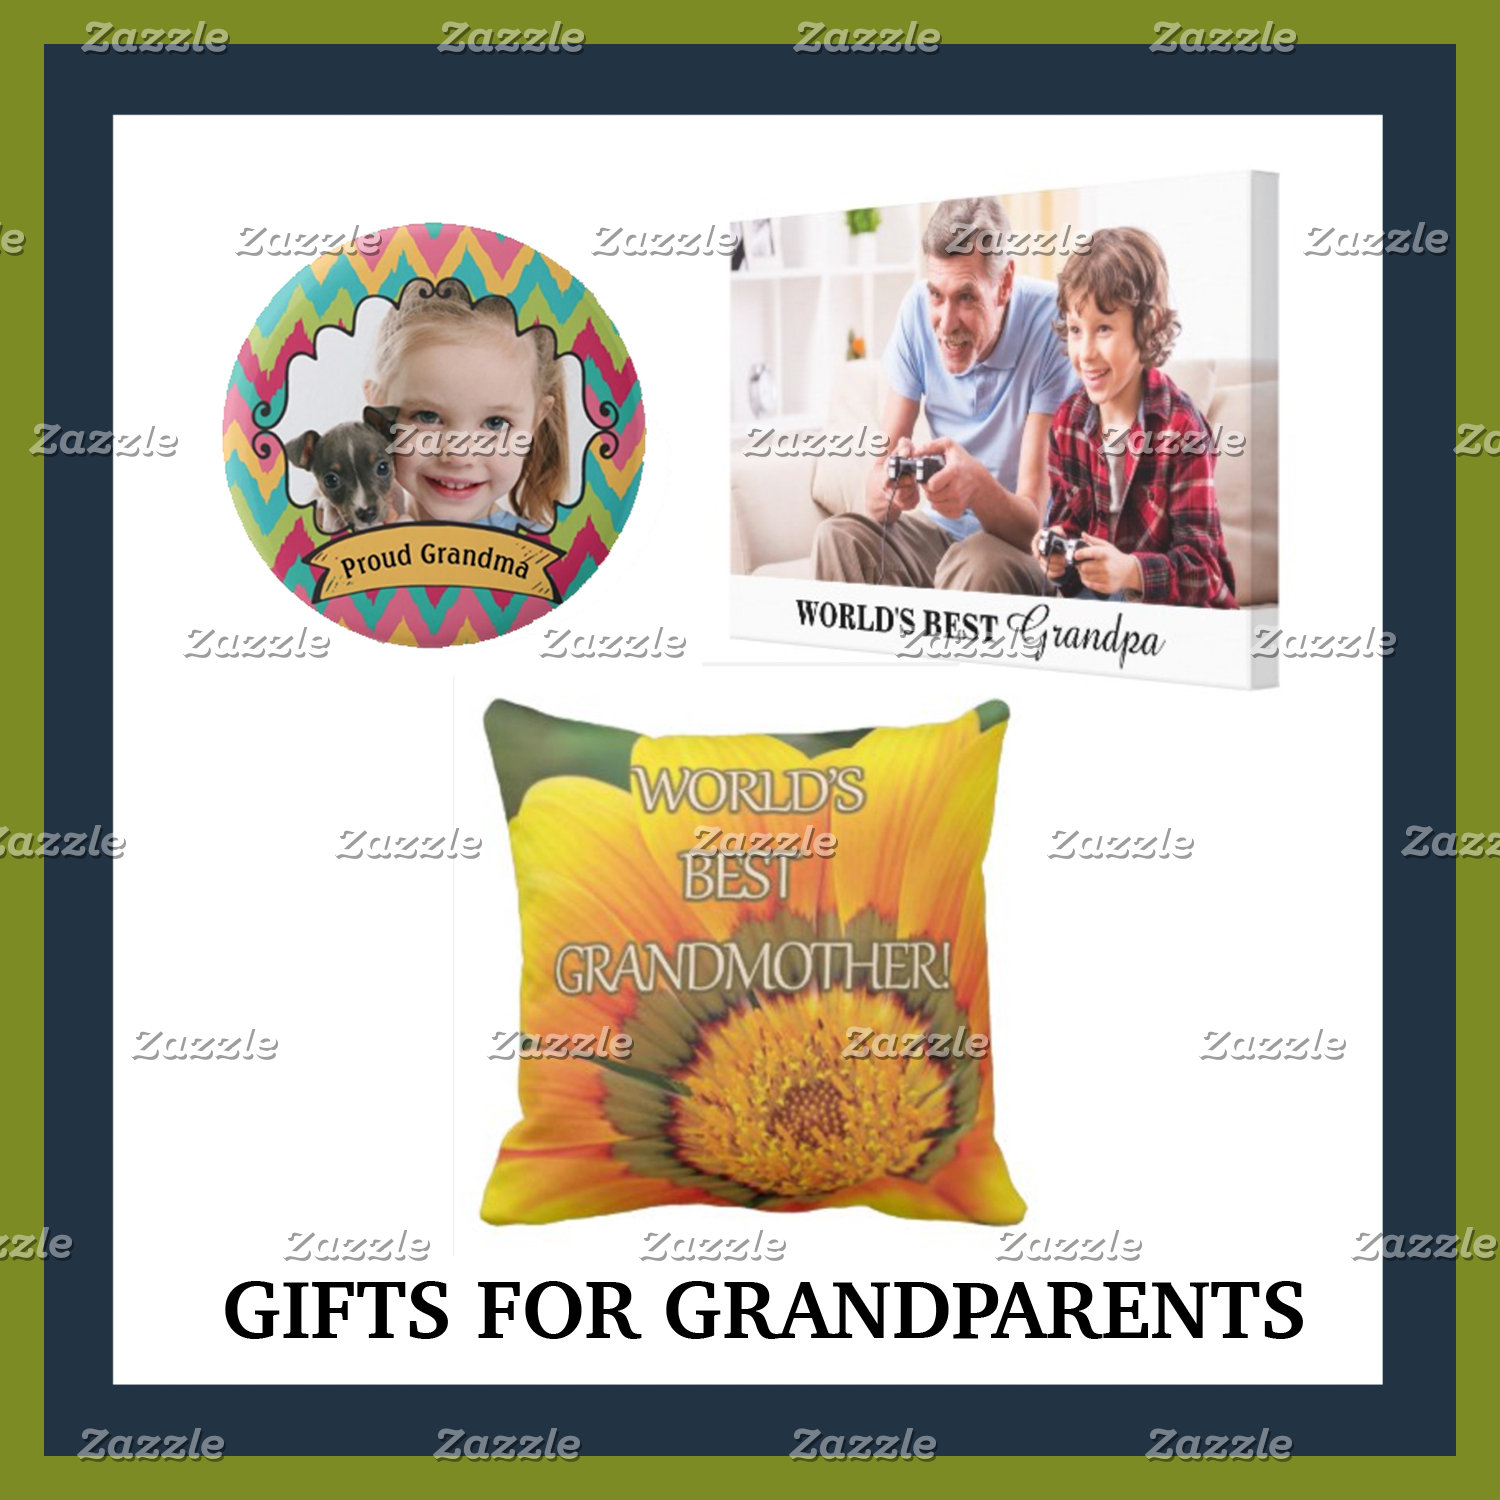 Gifts for Grandparents